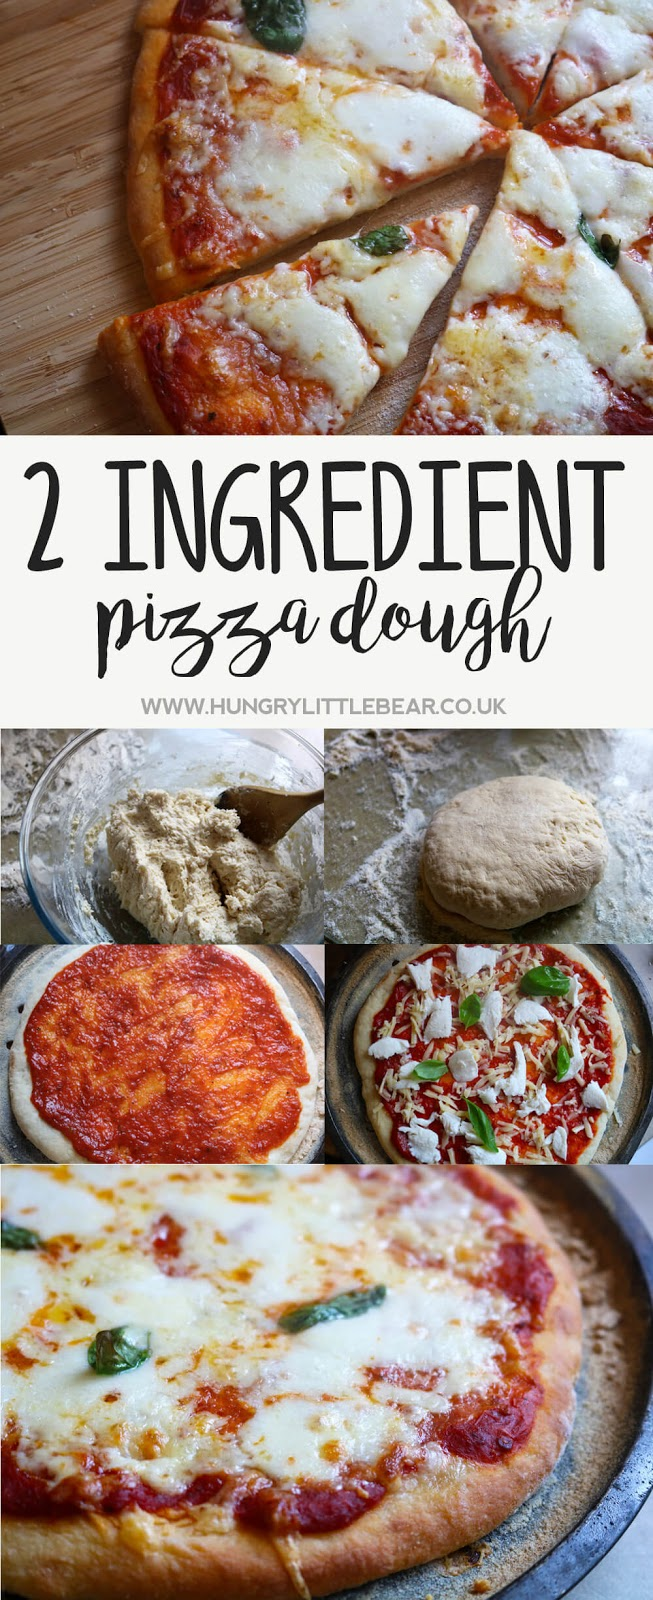 2 Ingredient Pizza Dough Recipe | Hungry Little Bear